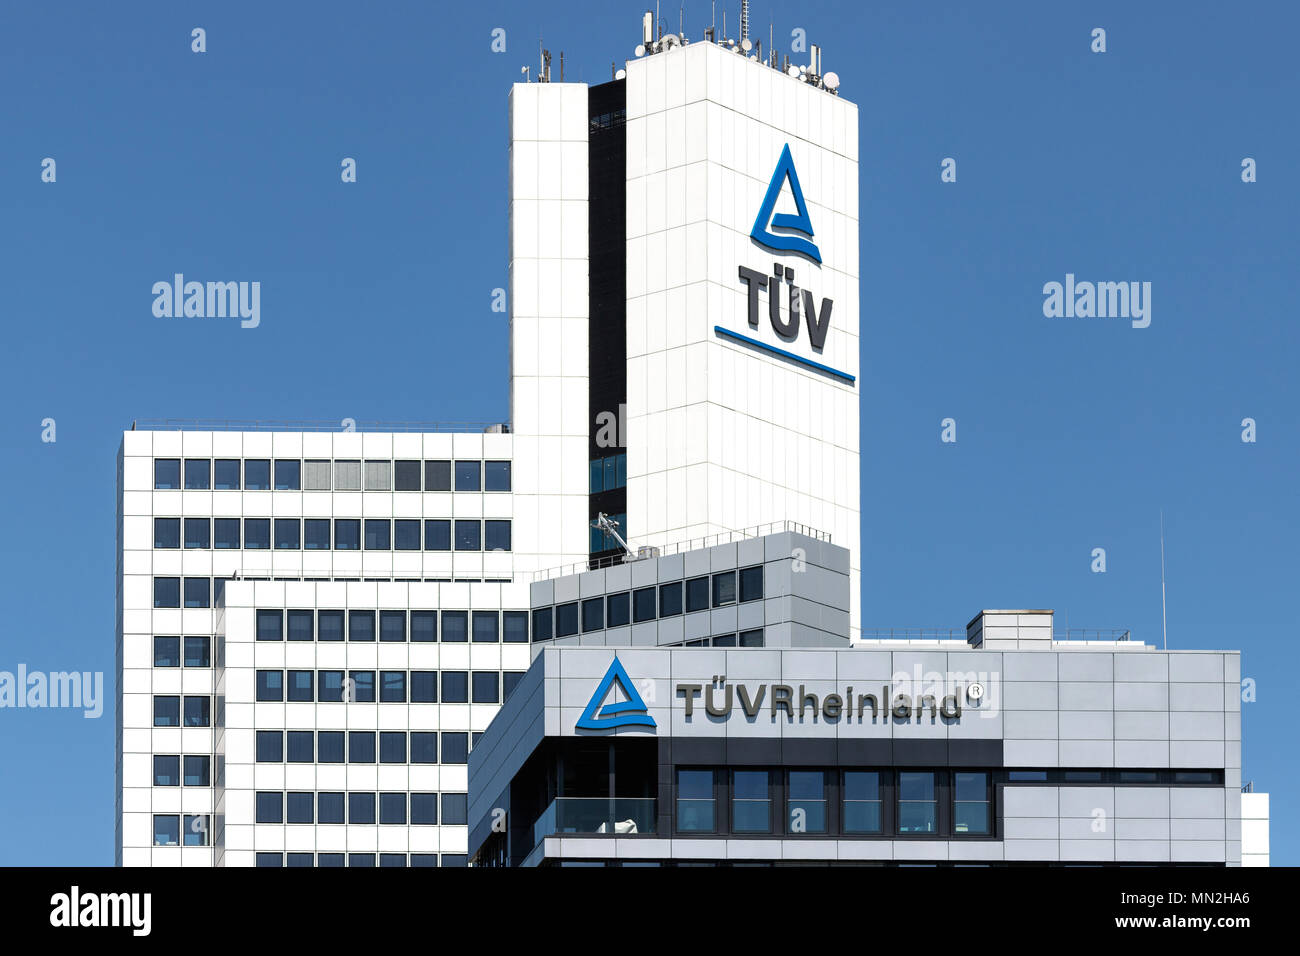 Headquarters of TÜV Rheinland in Cologne, Germany. Founded in 1872, TÜV Rheinland is one of the world's leading testing service providers. - Stock Image